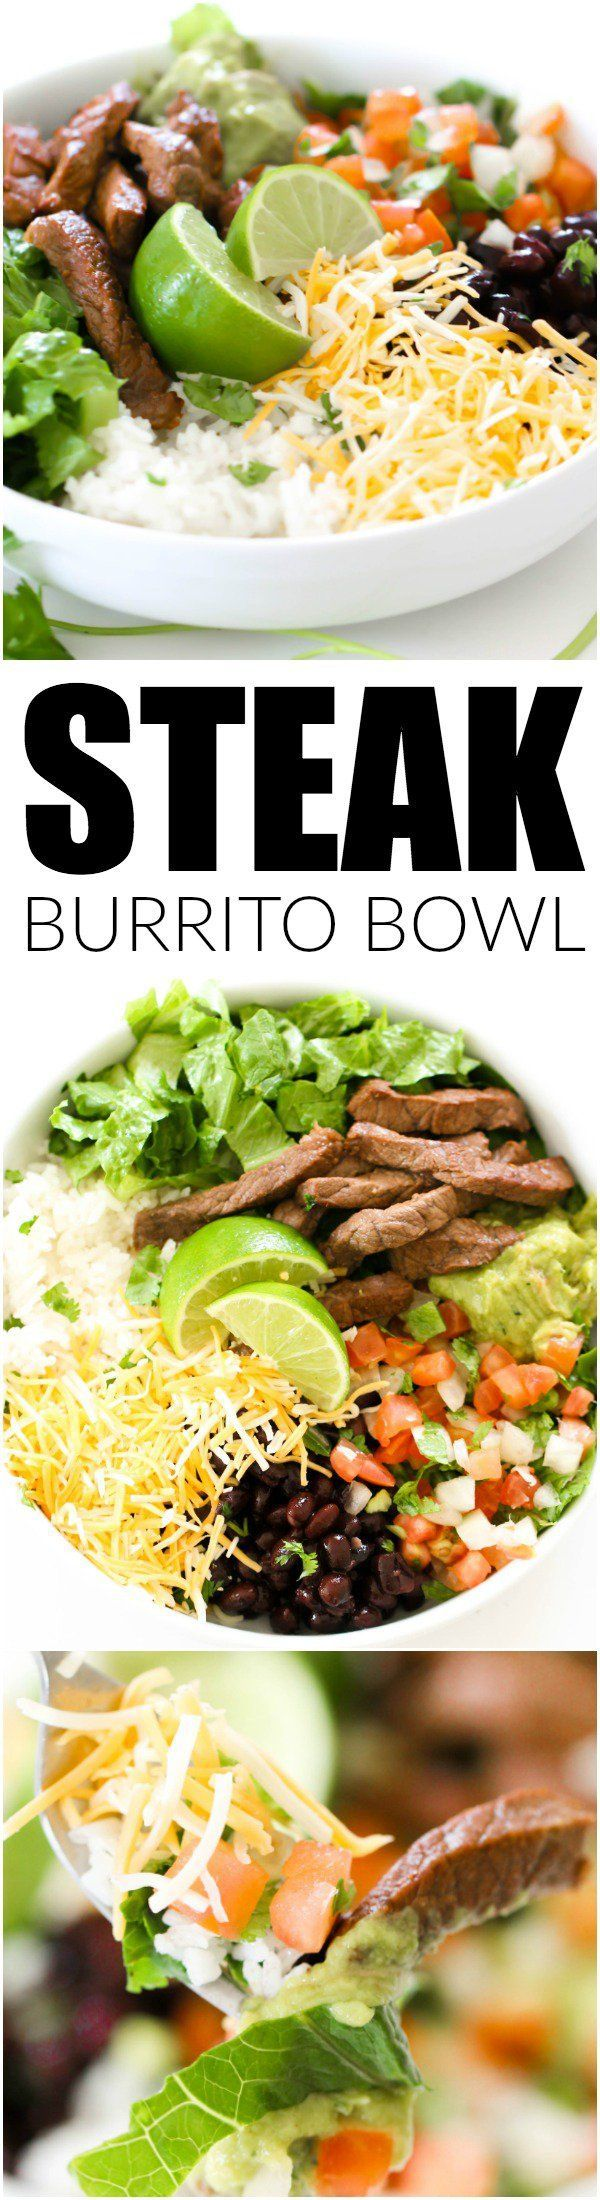 Steak burrito bowl from sixsistersstuff family meal ideas steak burrito bowl from sixsistersstuff family meal ideas dinner recipes beef forumfinder Images